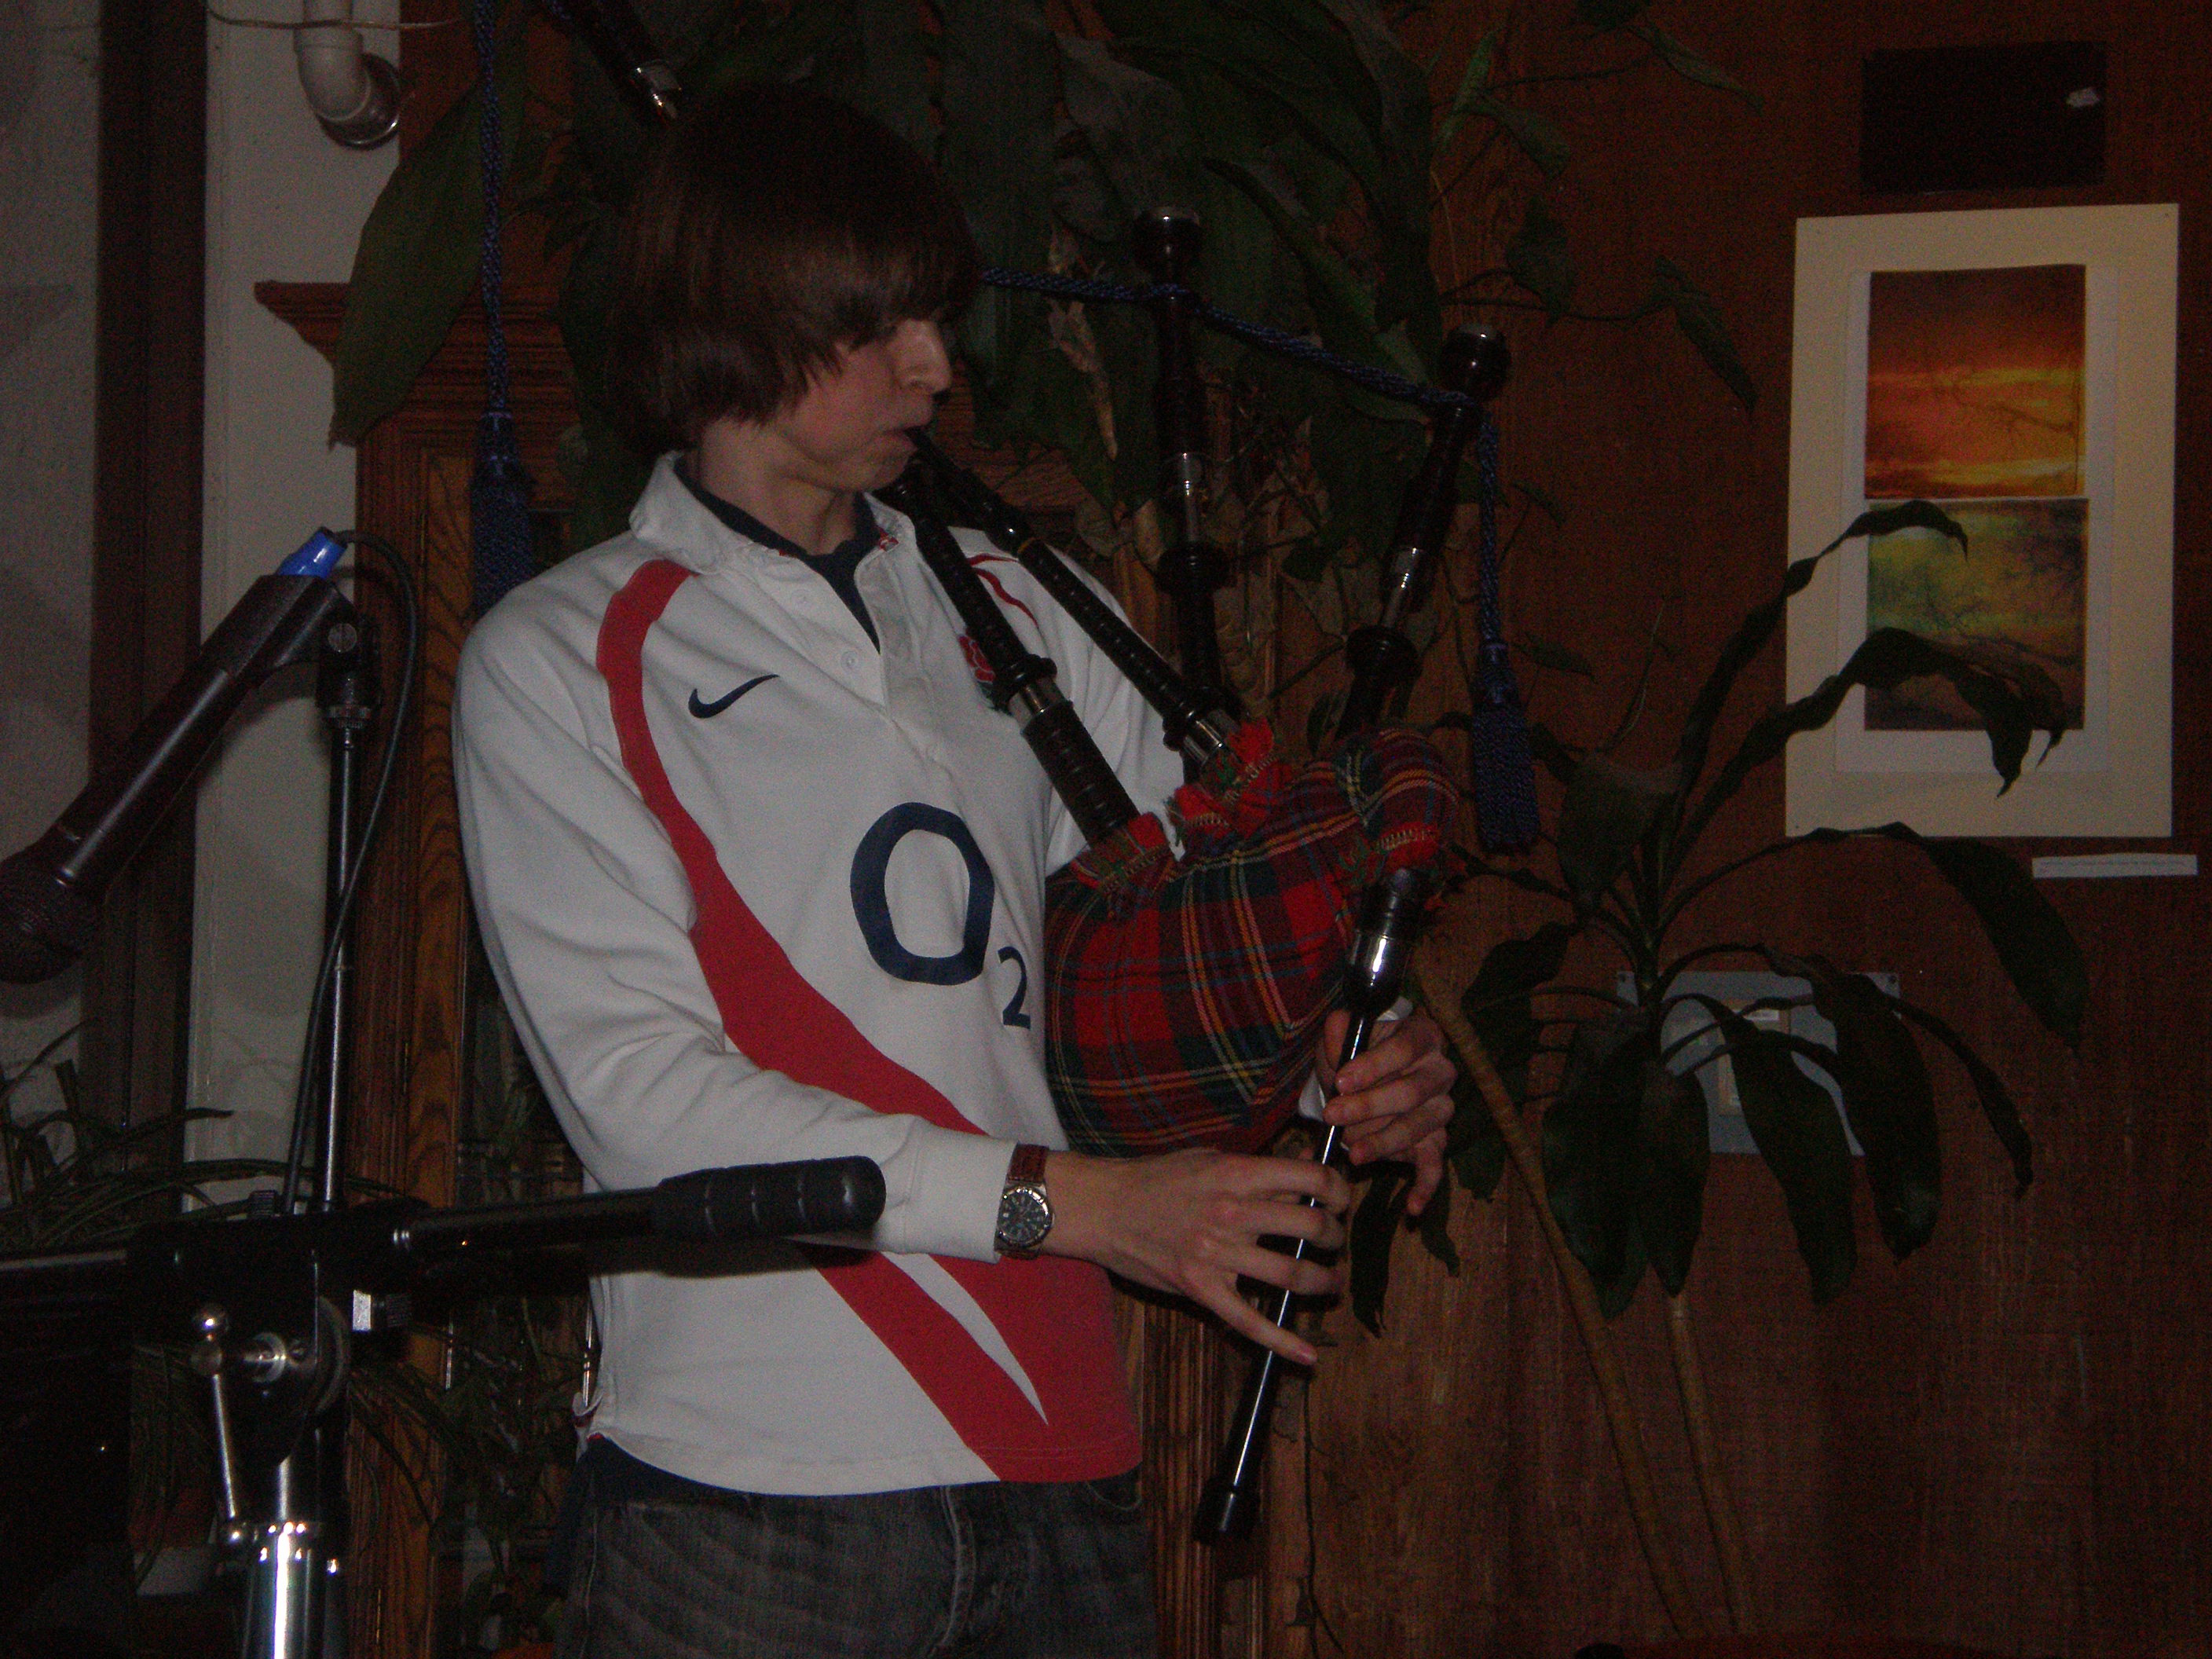 Tristan Begg brought diversity to the show with his bagpipe performance.